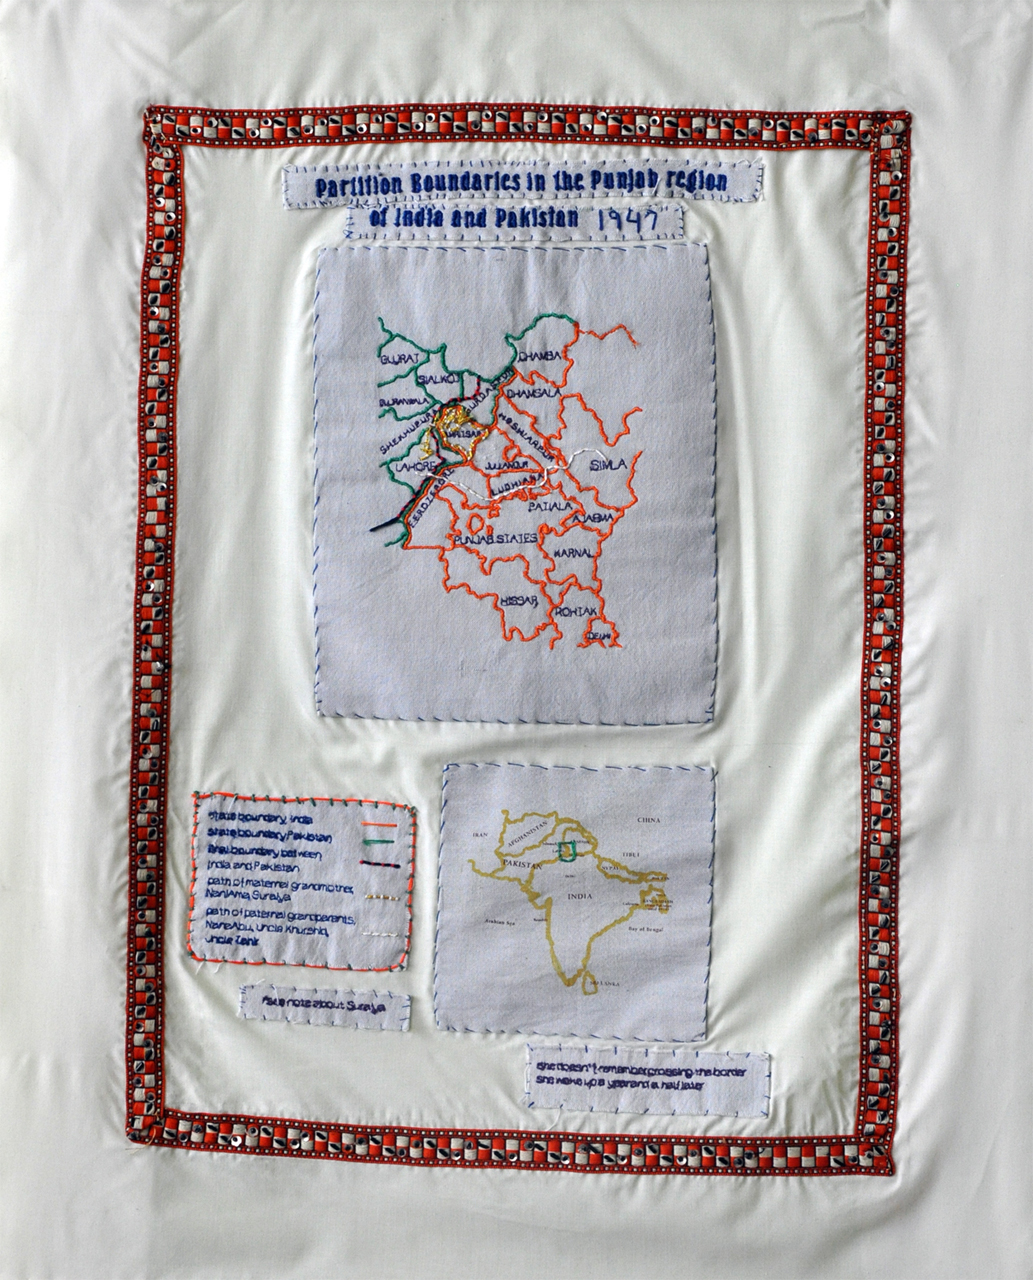 banners of partition, mapping punjab